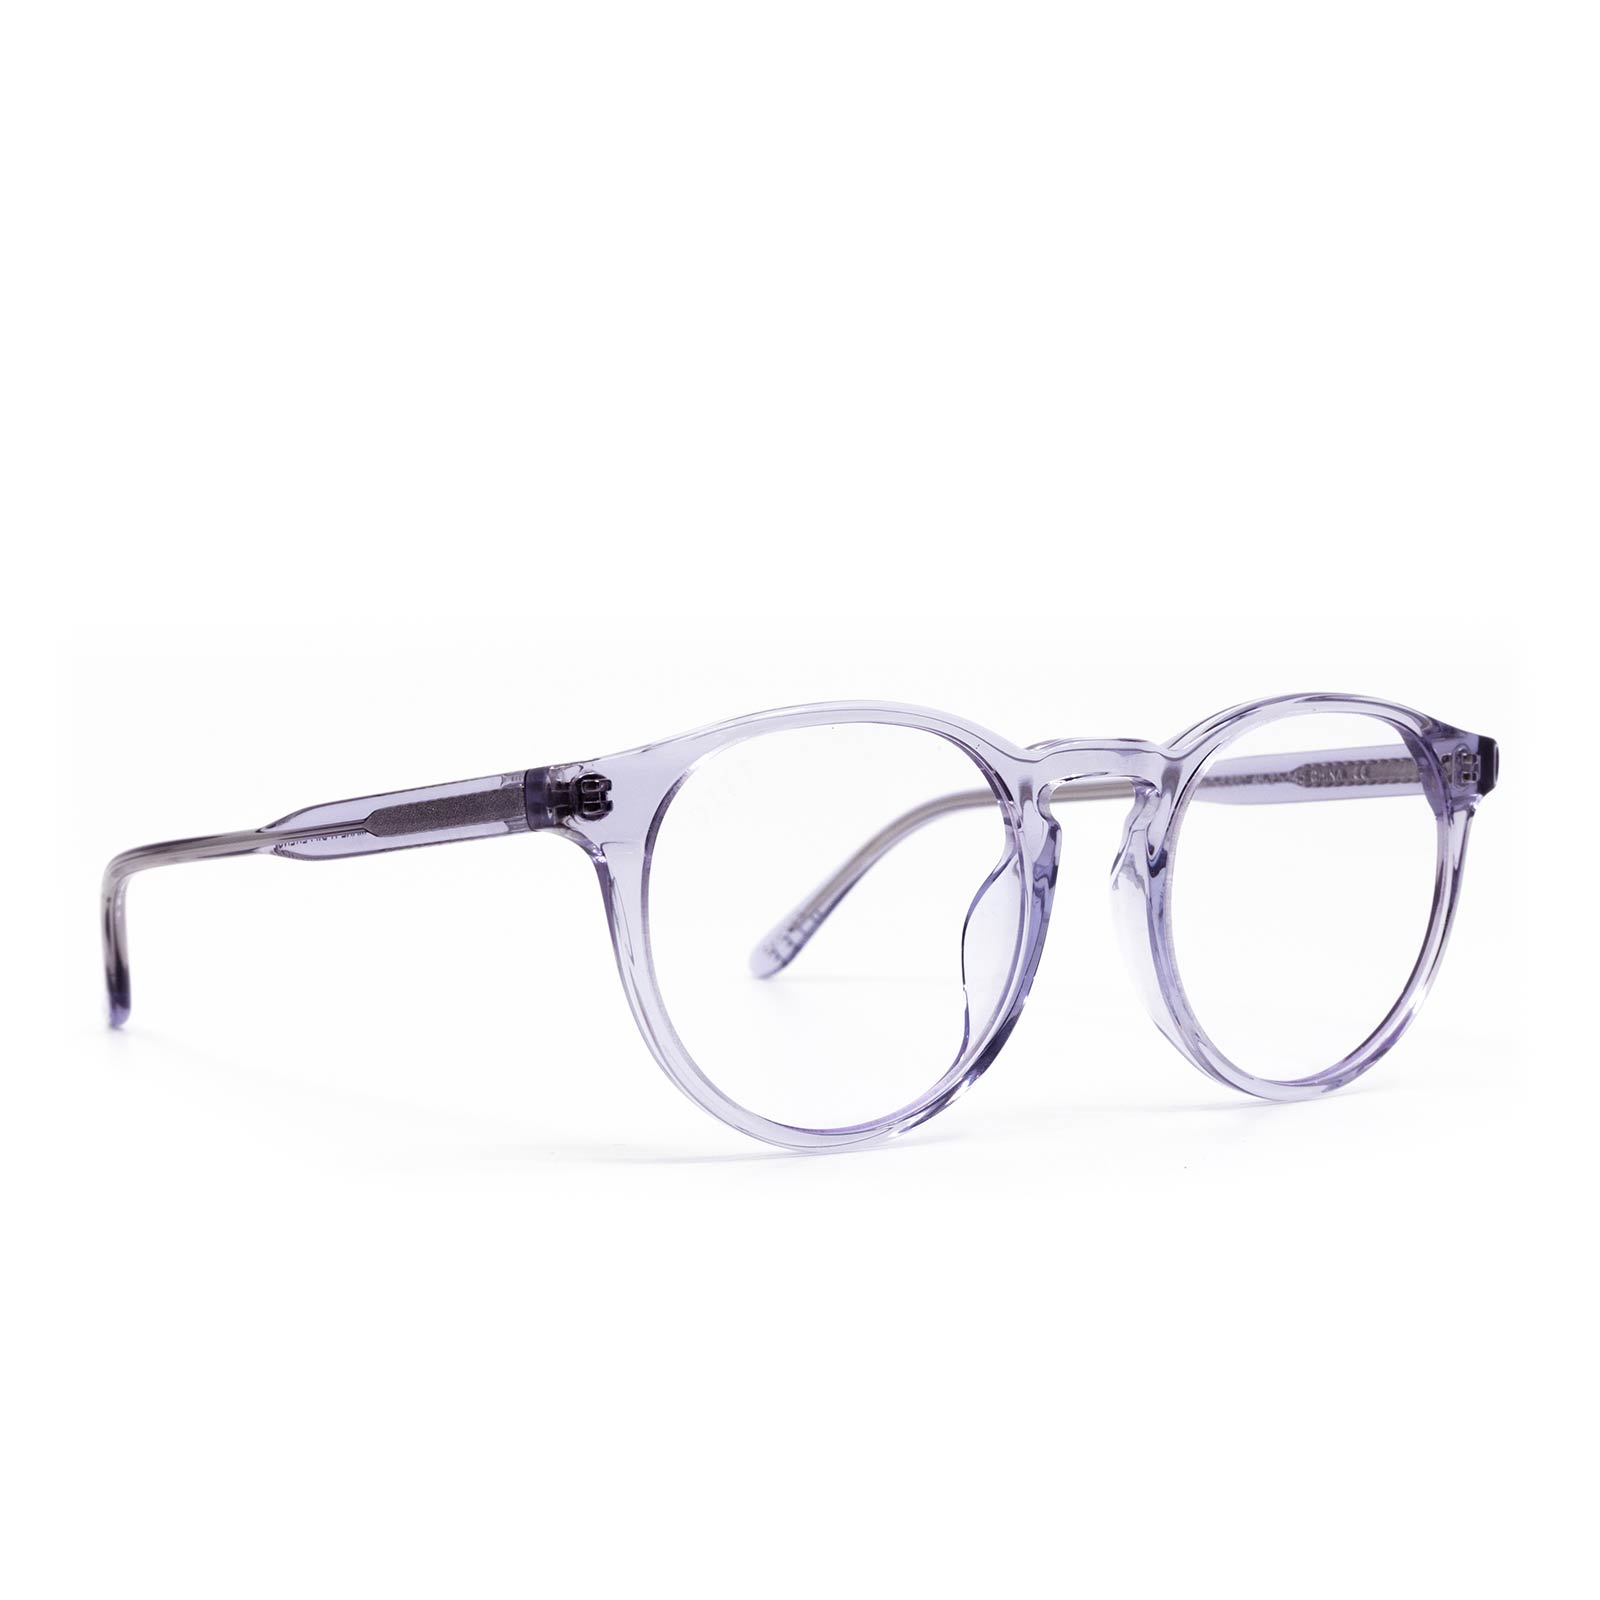 SAWYER - ULTRA VIOLET + BLUE LIGHT TECHNOLOGY CLEAR